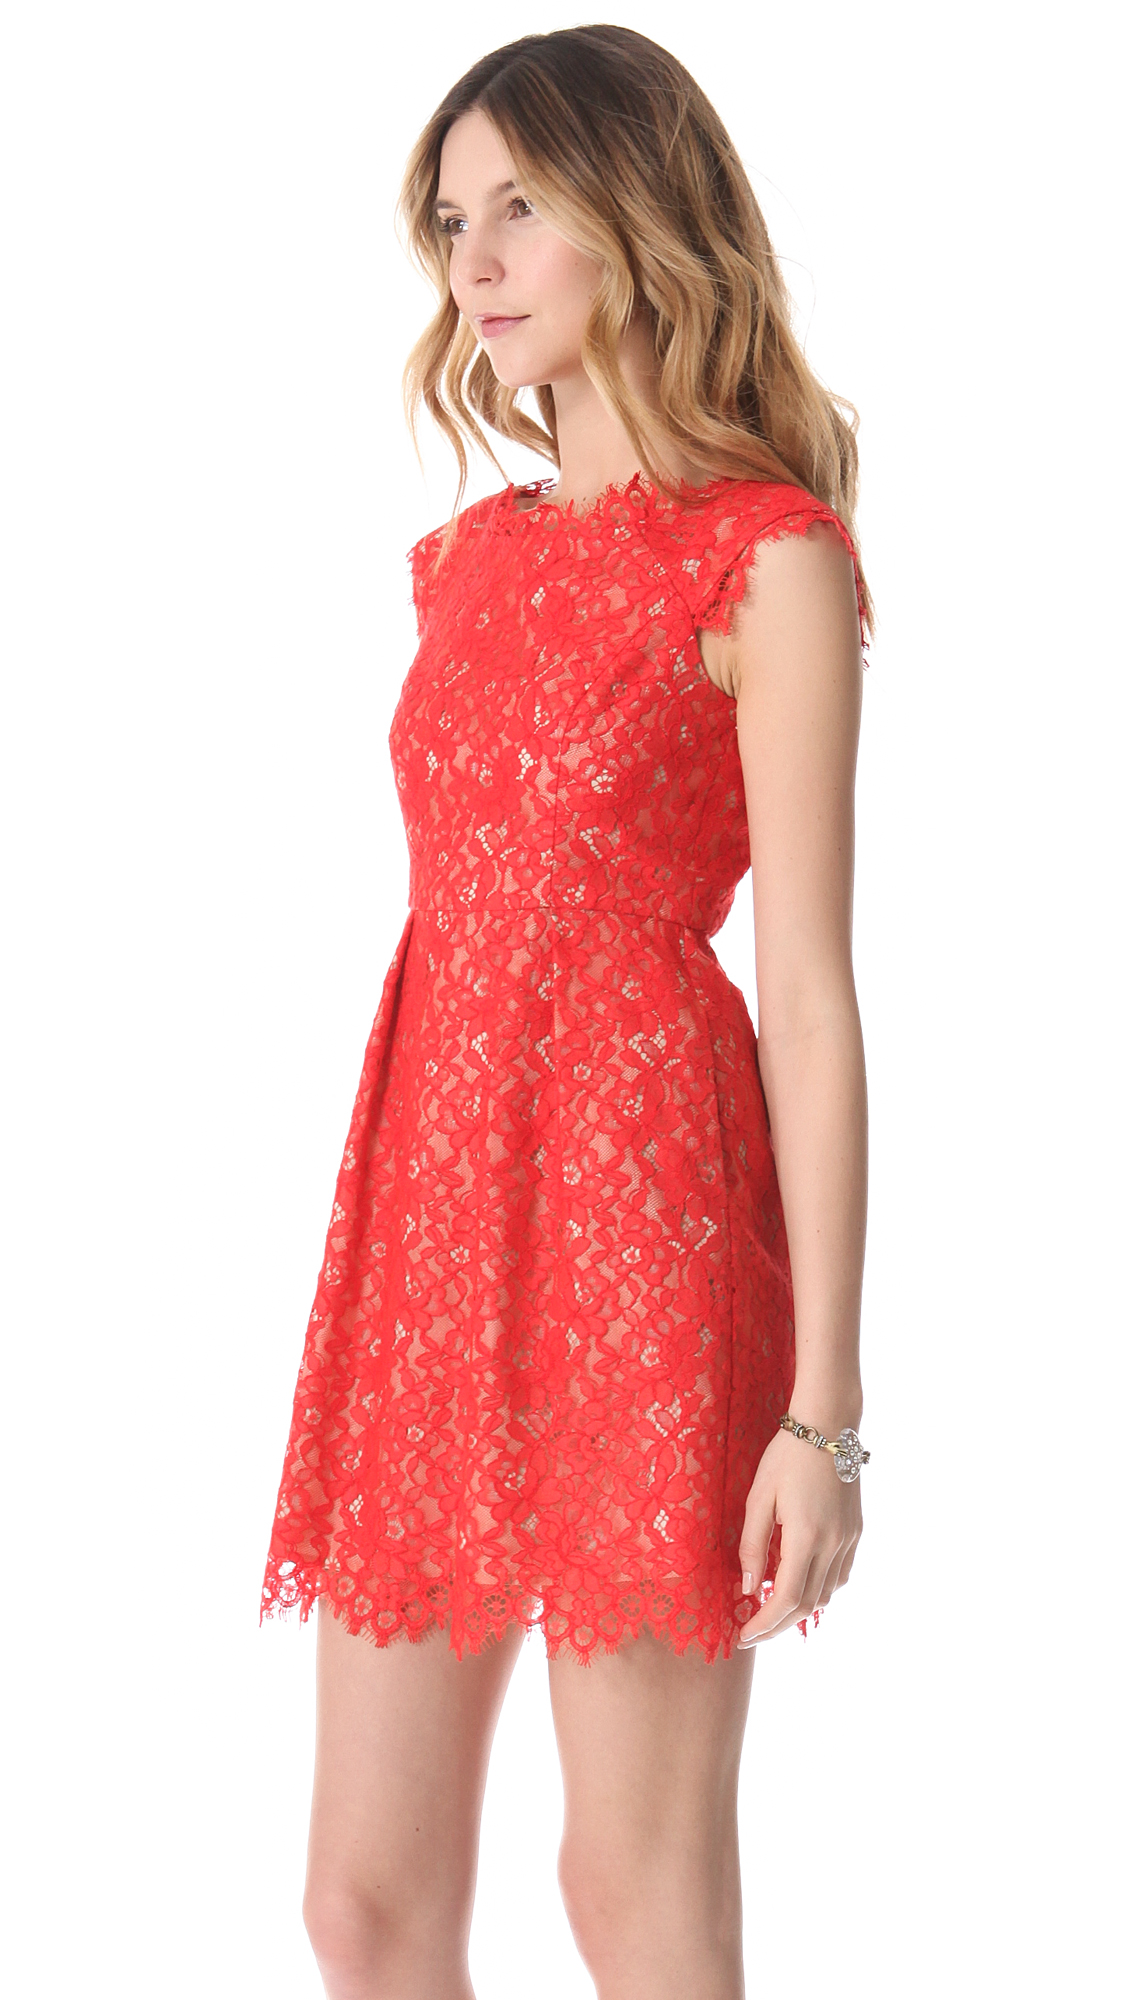 Shoshanna Lace Mini Dress in Red  Lyst